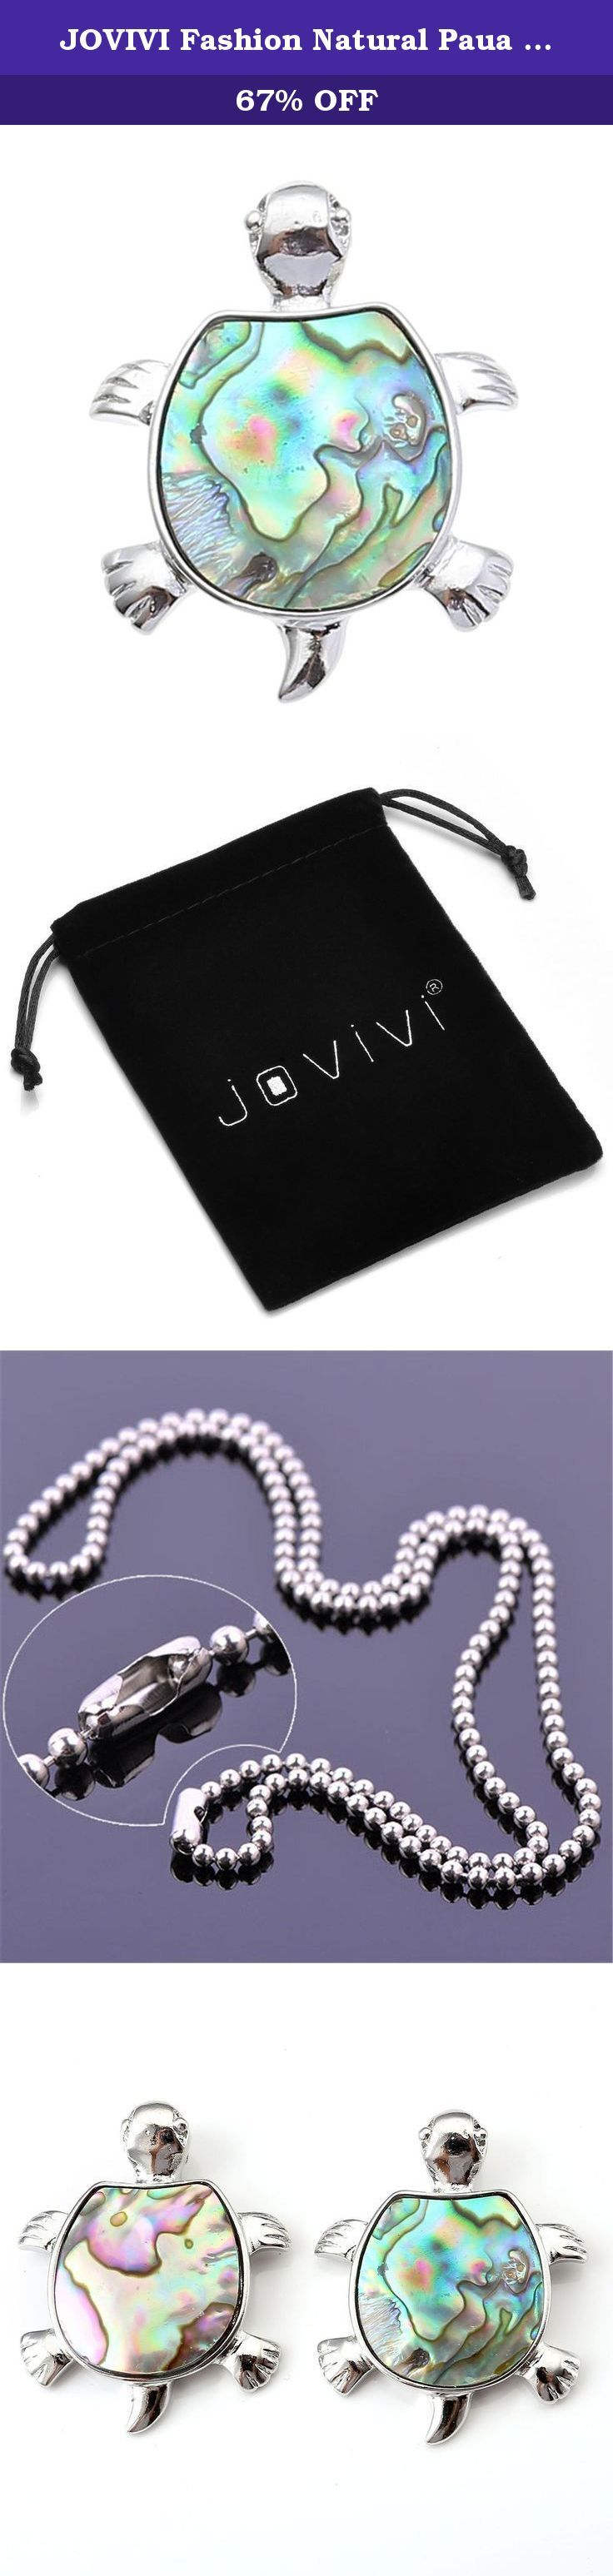 JOVIVI Fashion Natural Paua Abalone Tortoise Turtle Bead Charm Pendant Bead Necklace. *Thank you for visiting JOVIVI Store. We are specializing in jewelry making beads and findings. *If you like this product, we advise you add it to wish list now, so that we will inform you immediately once it has a discount. *And you can click our brand name which on the top of the title; you can find more jewelry making beads with high quality and reasonable price. *If you have any question or advice...